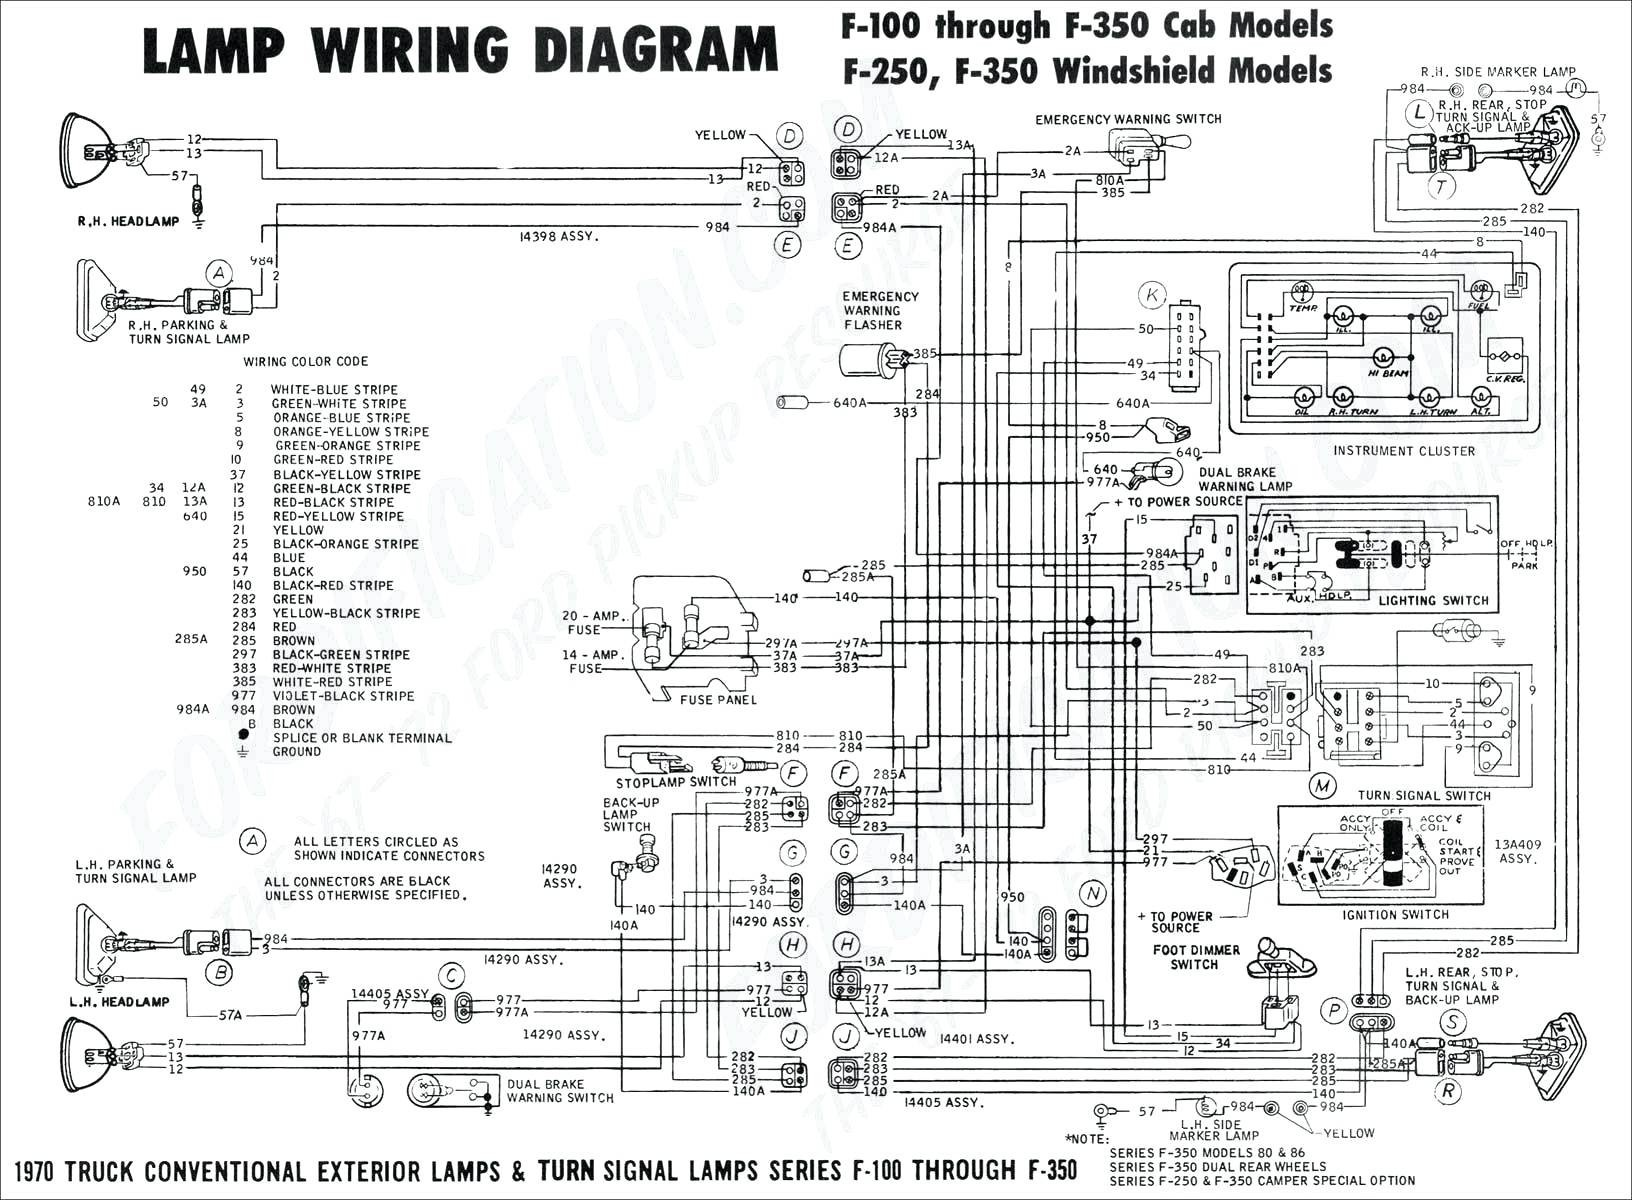 W115 Wiring Diagram Pcm Harness Library 350 Tbi Experts Of U2022 Rh Evilcloud Co Uk Ecm